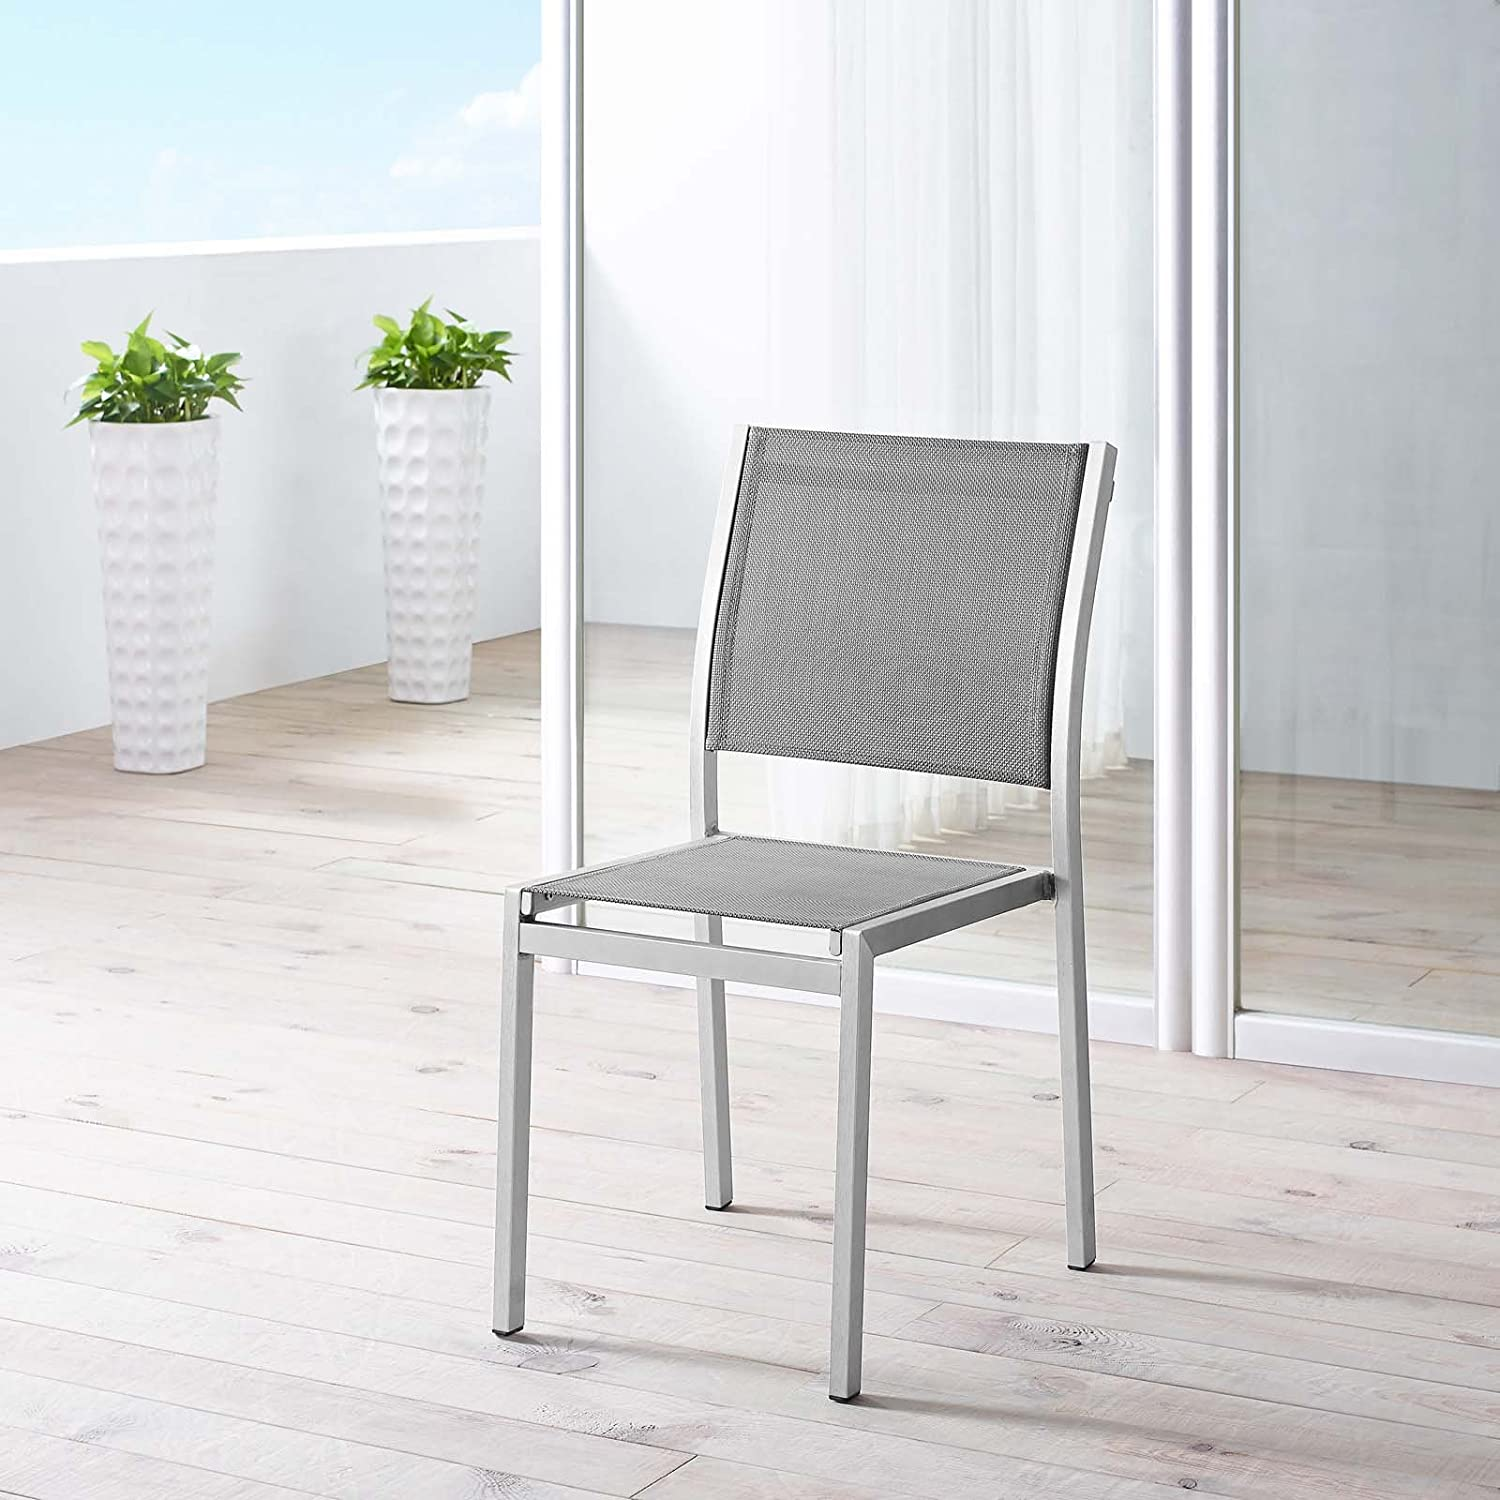 Modway EEI-2259-SLV-GRY Shore Outdoor Patio Aluminum Side Chair in Silver Gray, One Dining